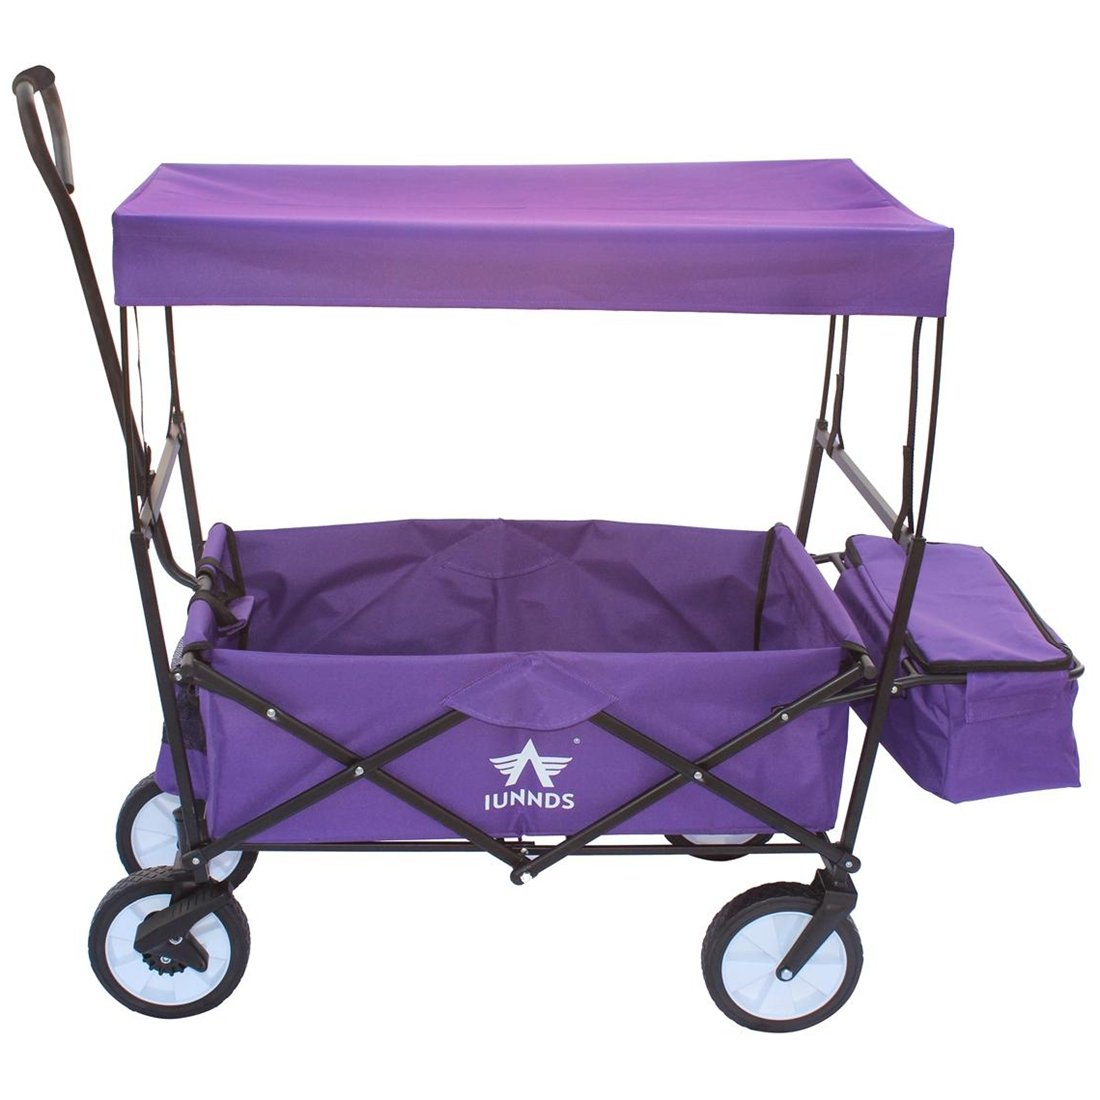 Sports God Folding Wagon Collapsible Utility Graden Cart with Removable Canopy + Storage Basket + FREE Cooler (Purple)